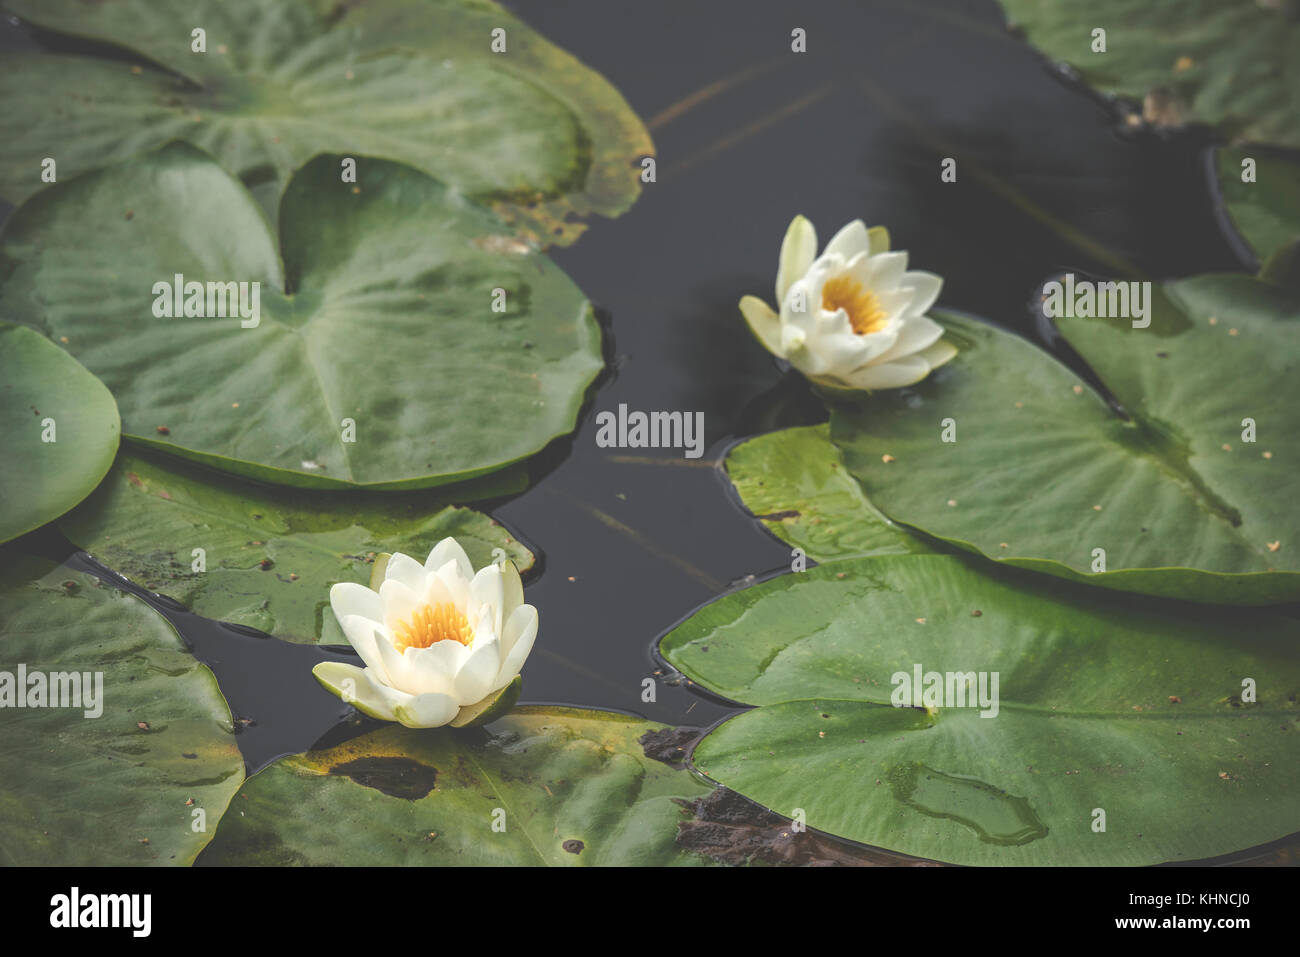 White lily flowers in calm and dark water with large green leaves floating on the water - Stock Image